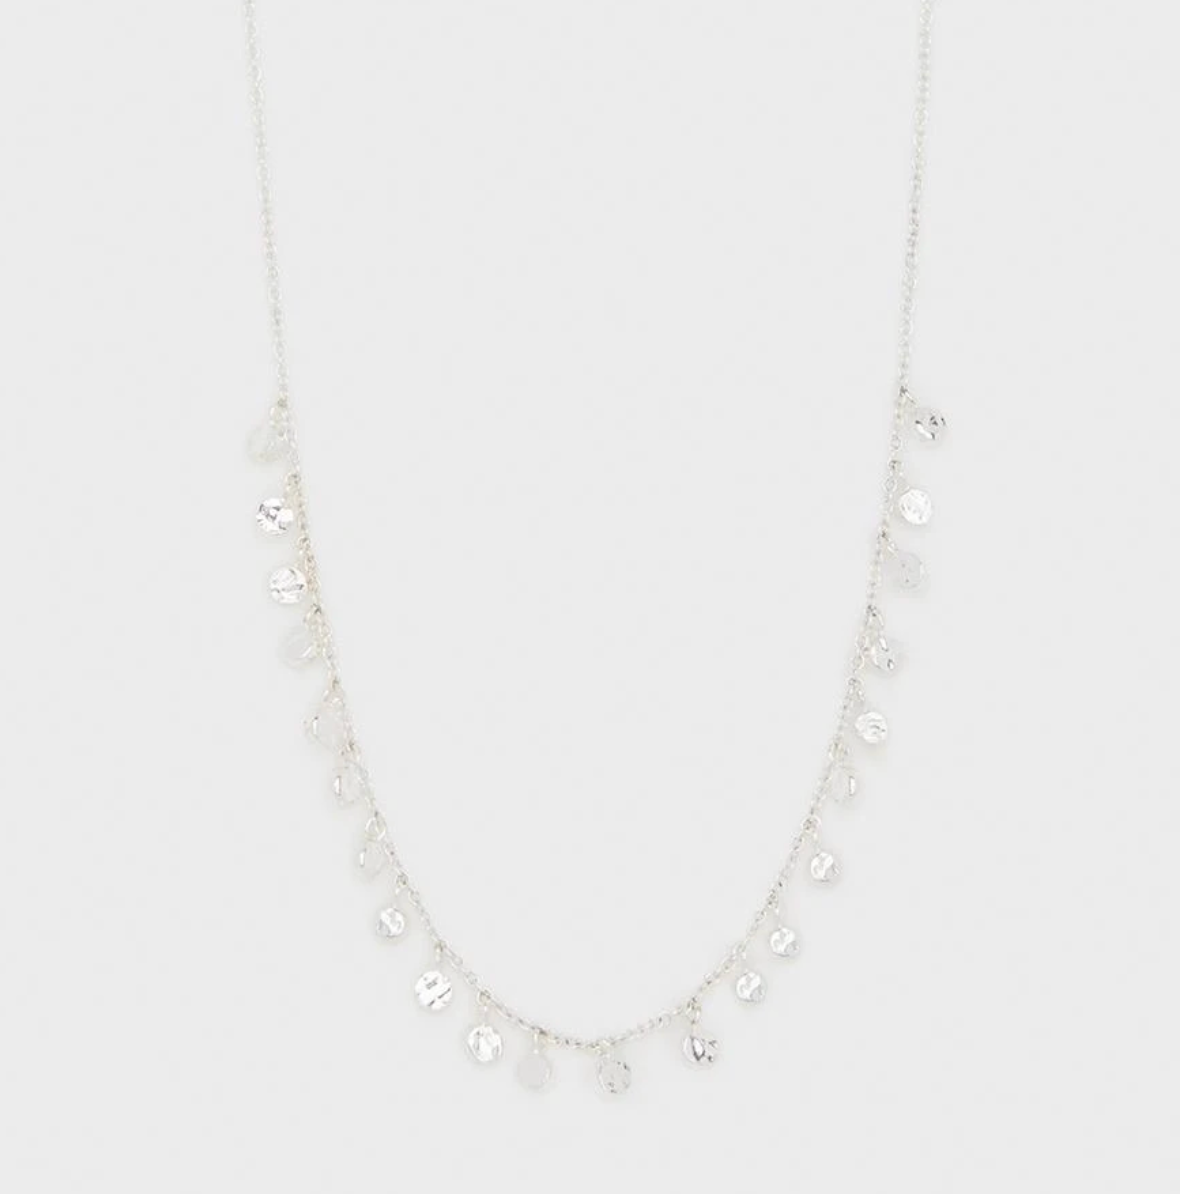 Chloe Mini Necklace - Silver 161-105